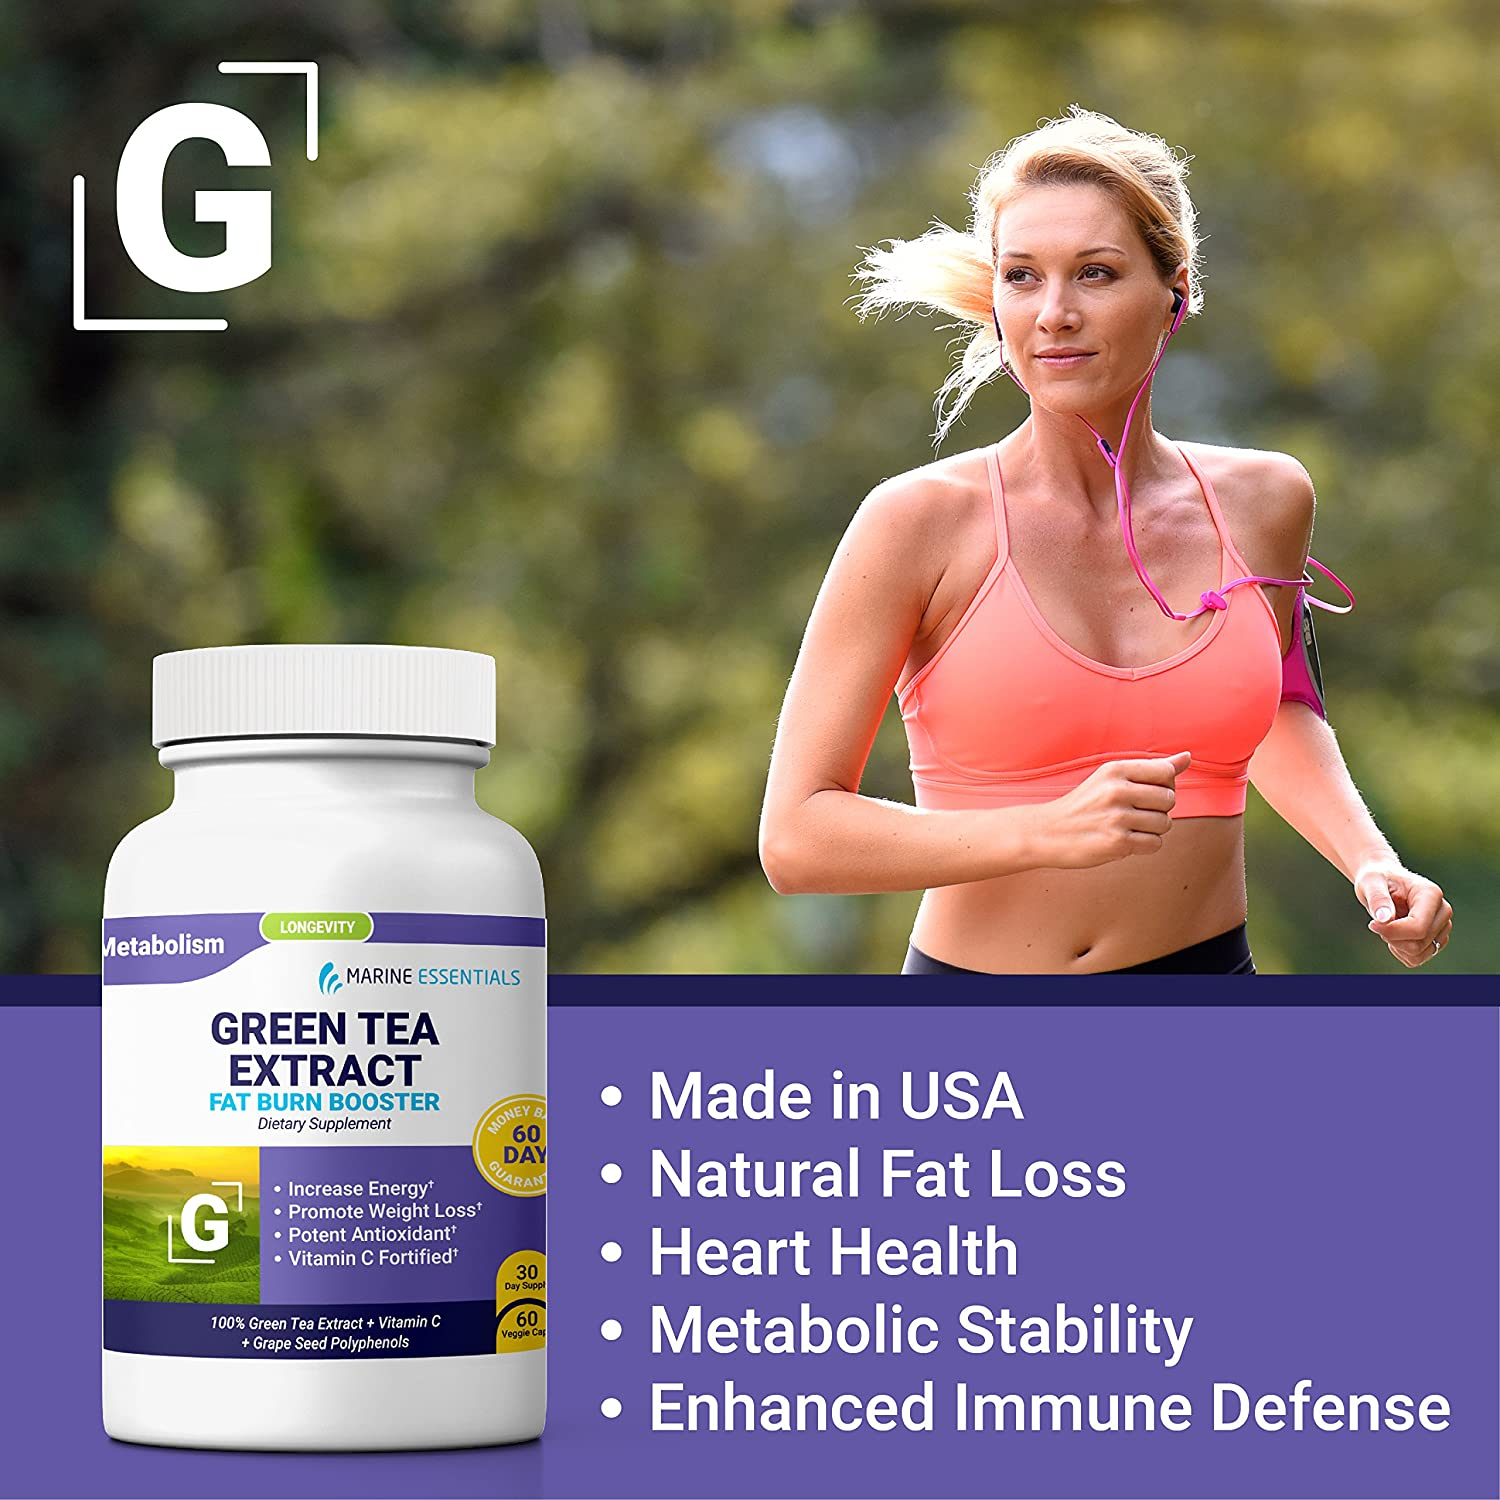 Marine Essentials Green Tea Extract – Green Tea Extract Natural Weight Loss Supplement with Vitamin C and Antioxidant Grape Seed Extract 120 Fat Burner Capsules